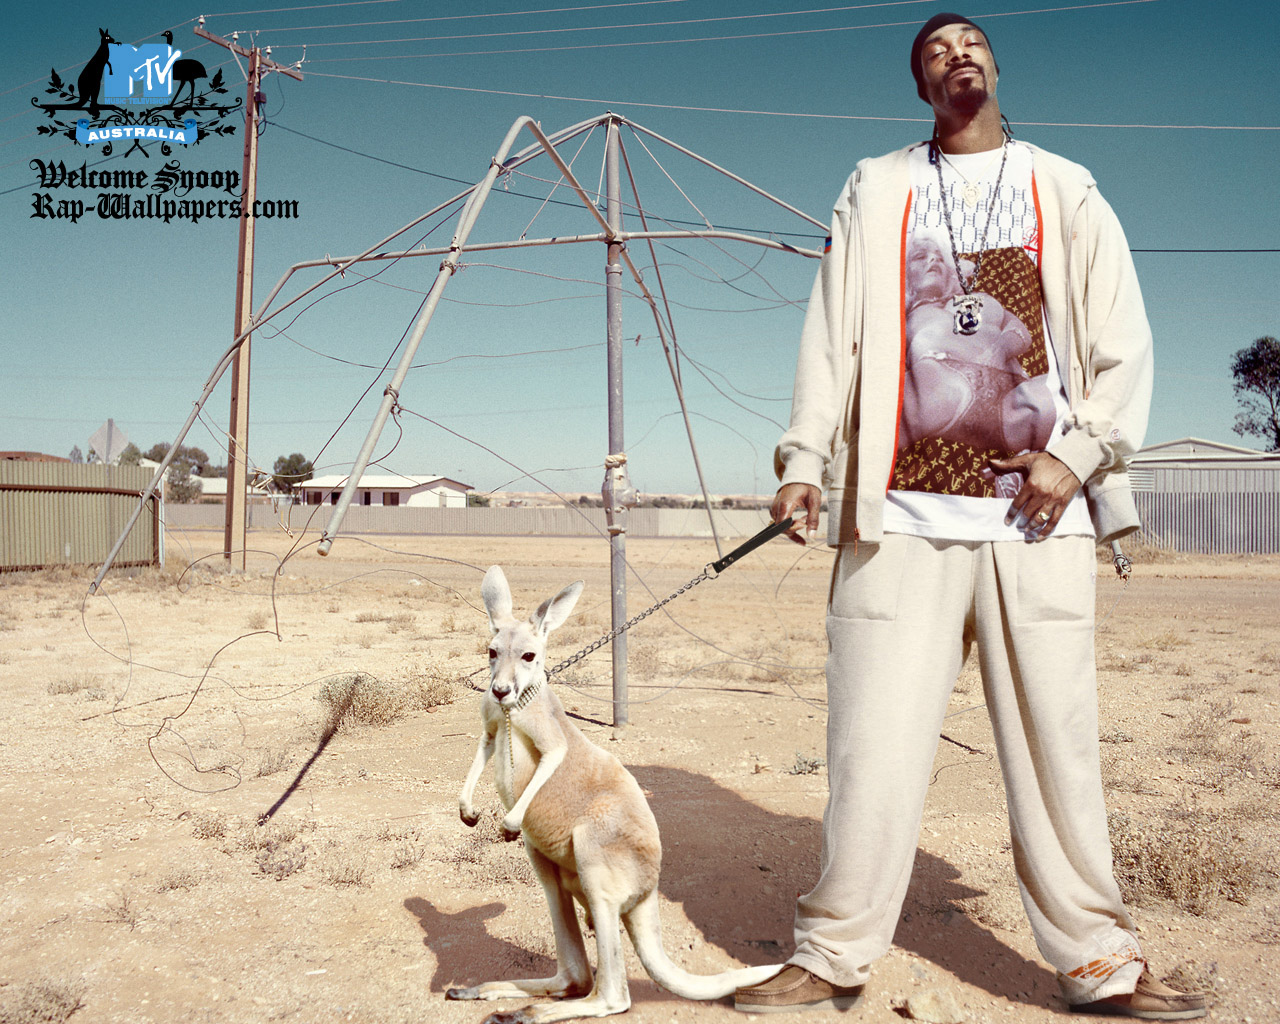 http://4.bp.blogspot.com/-udBGicBaMZo/T4cuc7PhFvI/AAAAAAAADN0/pULCwVwAMfE/s1600/wallpapers+snoop+dogg+-+australia+-+hd+rap+wallpapers.jpg